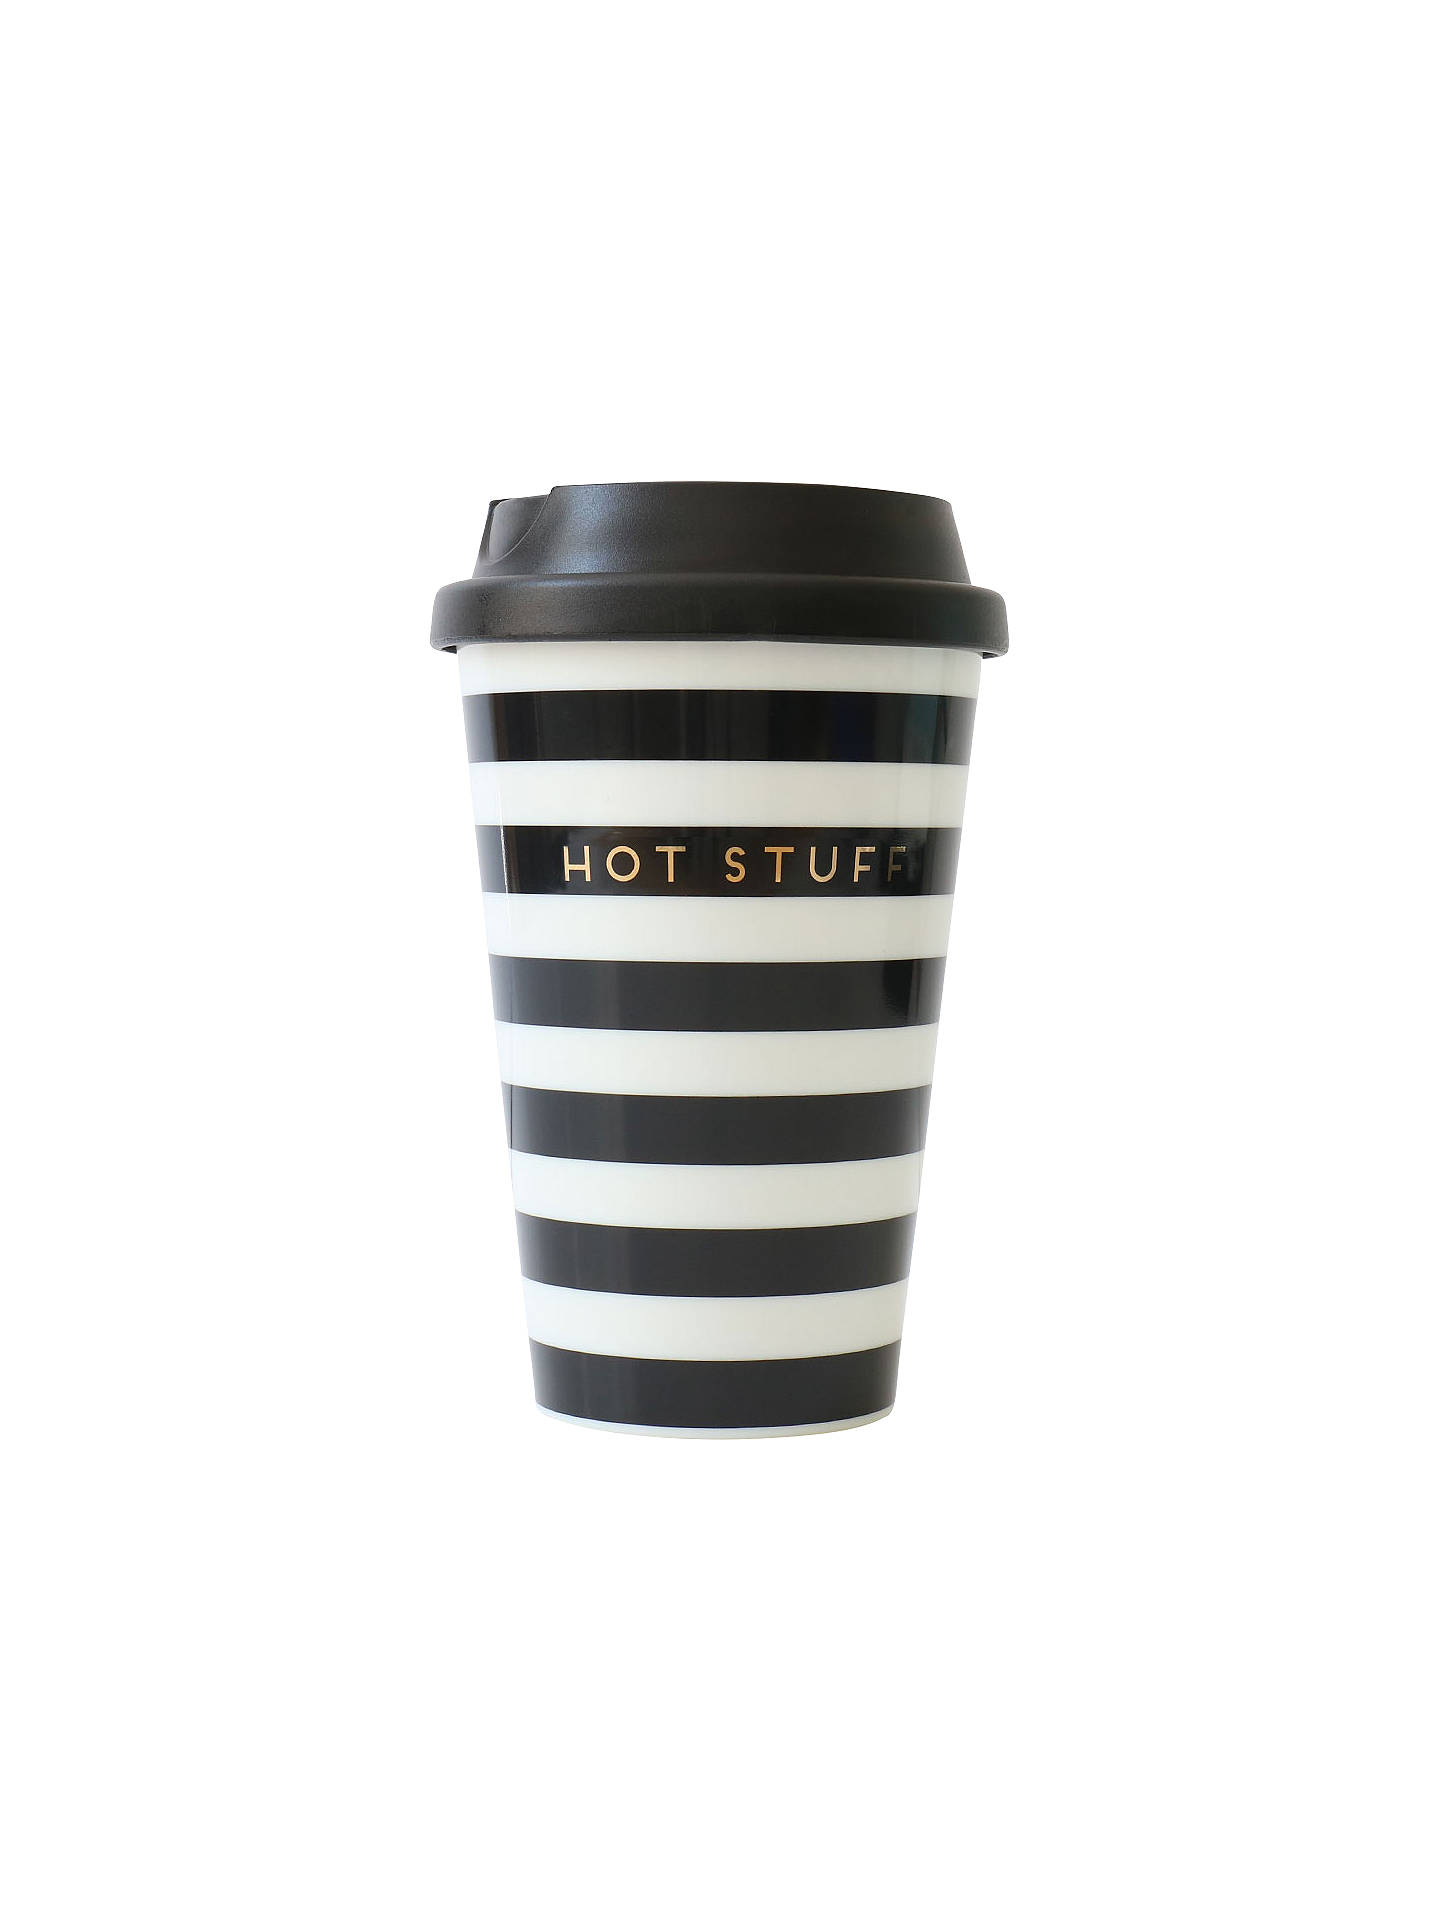 BuyAlice Scott Hot Stuff Travel Mug, Black/White Online at johnlewis.com